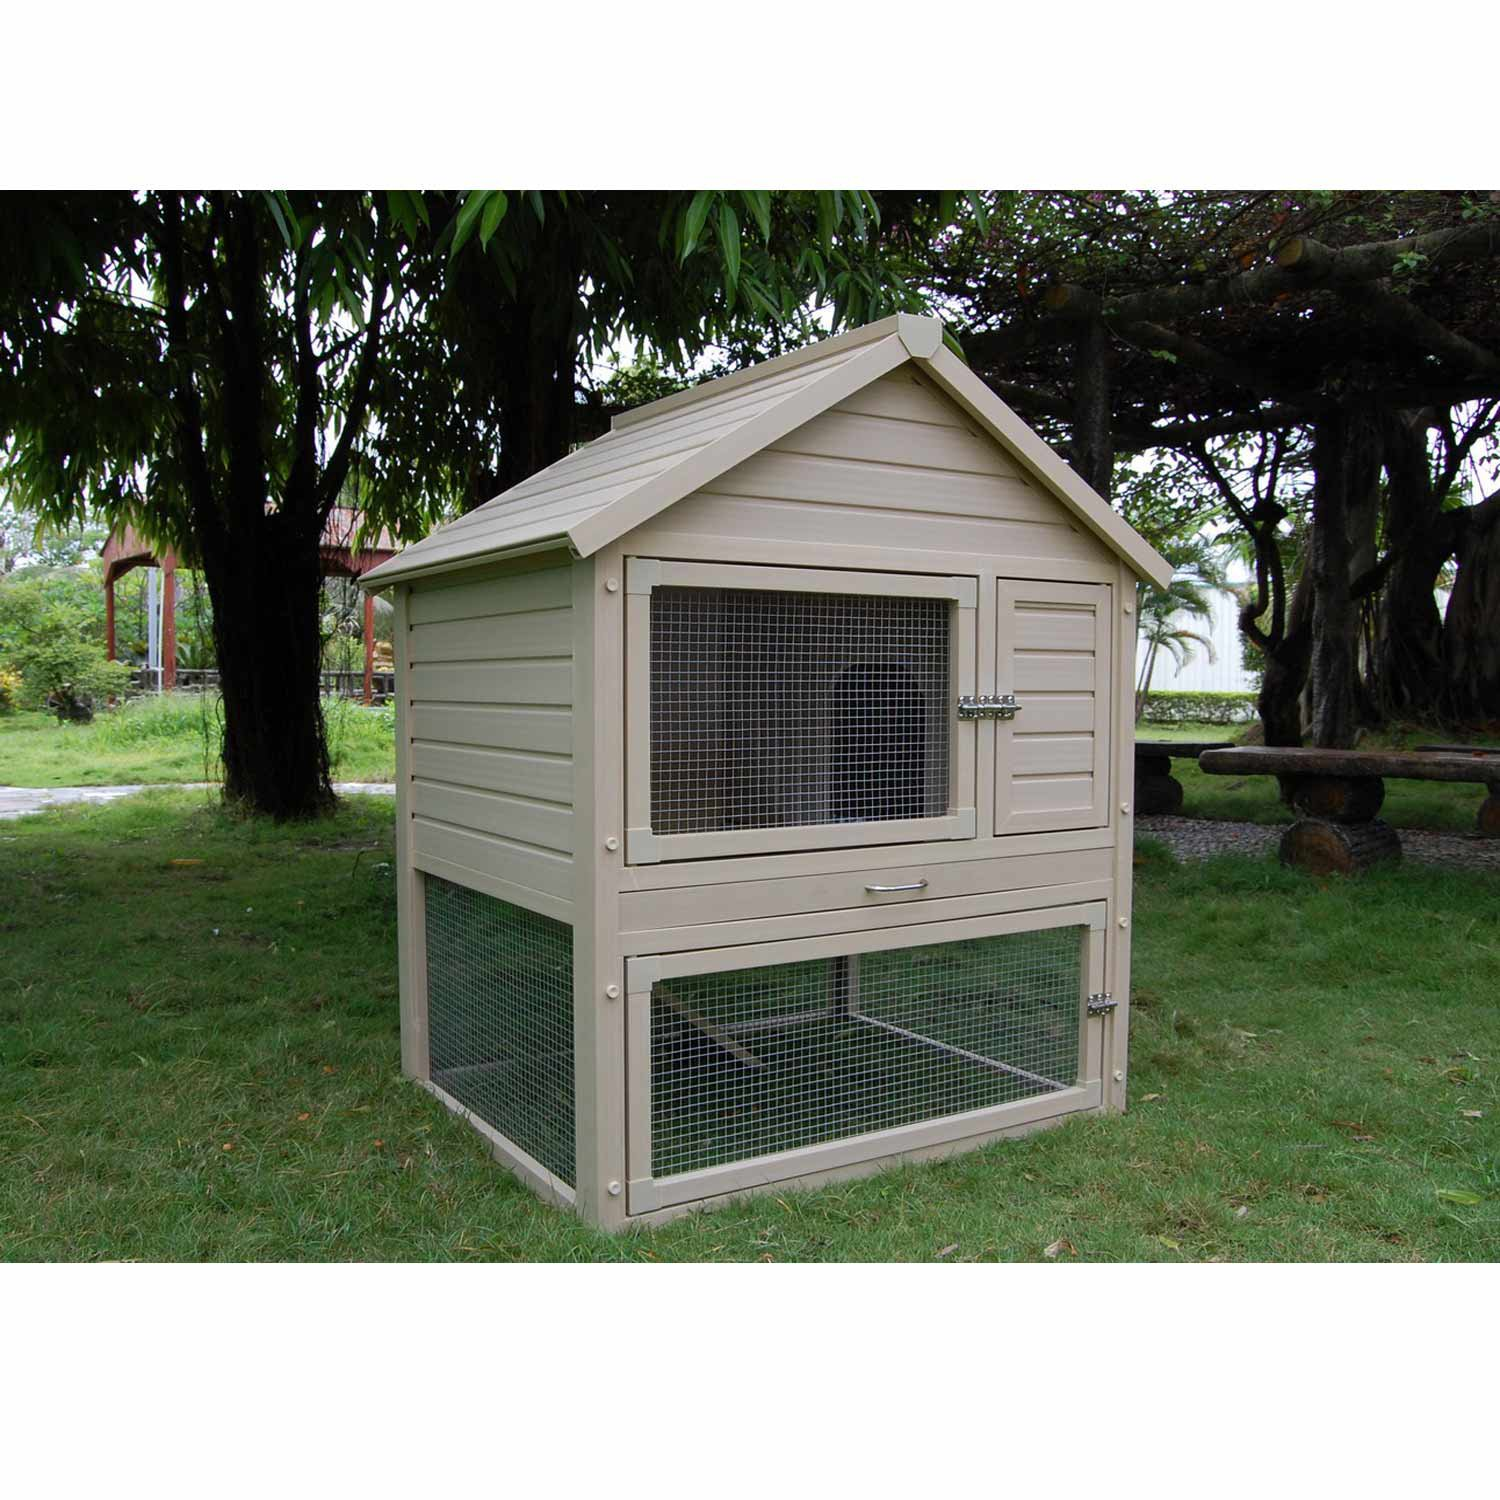 p furniture guinea supplies rabbit or on carousell new almost hutches hutch pets pig